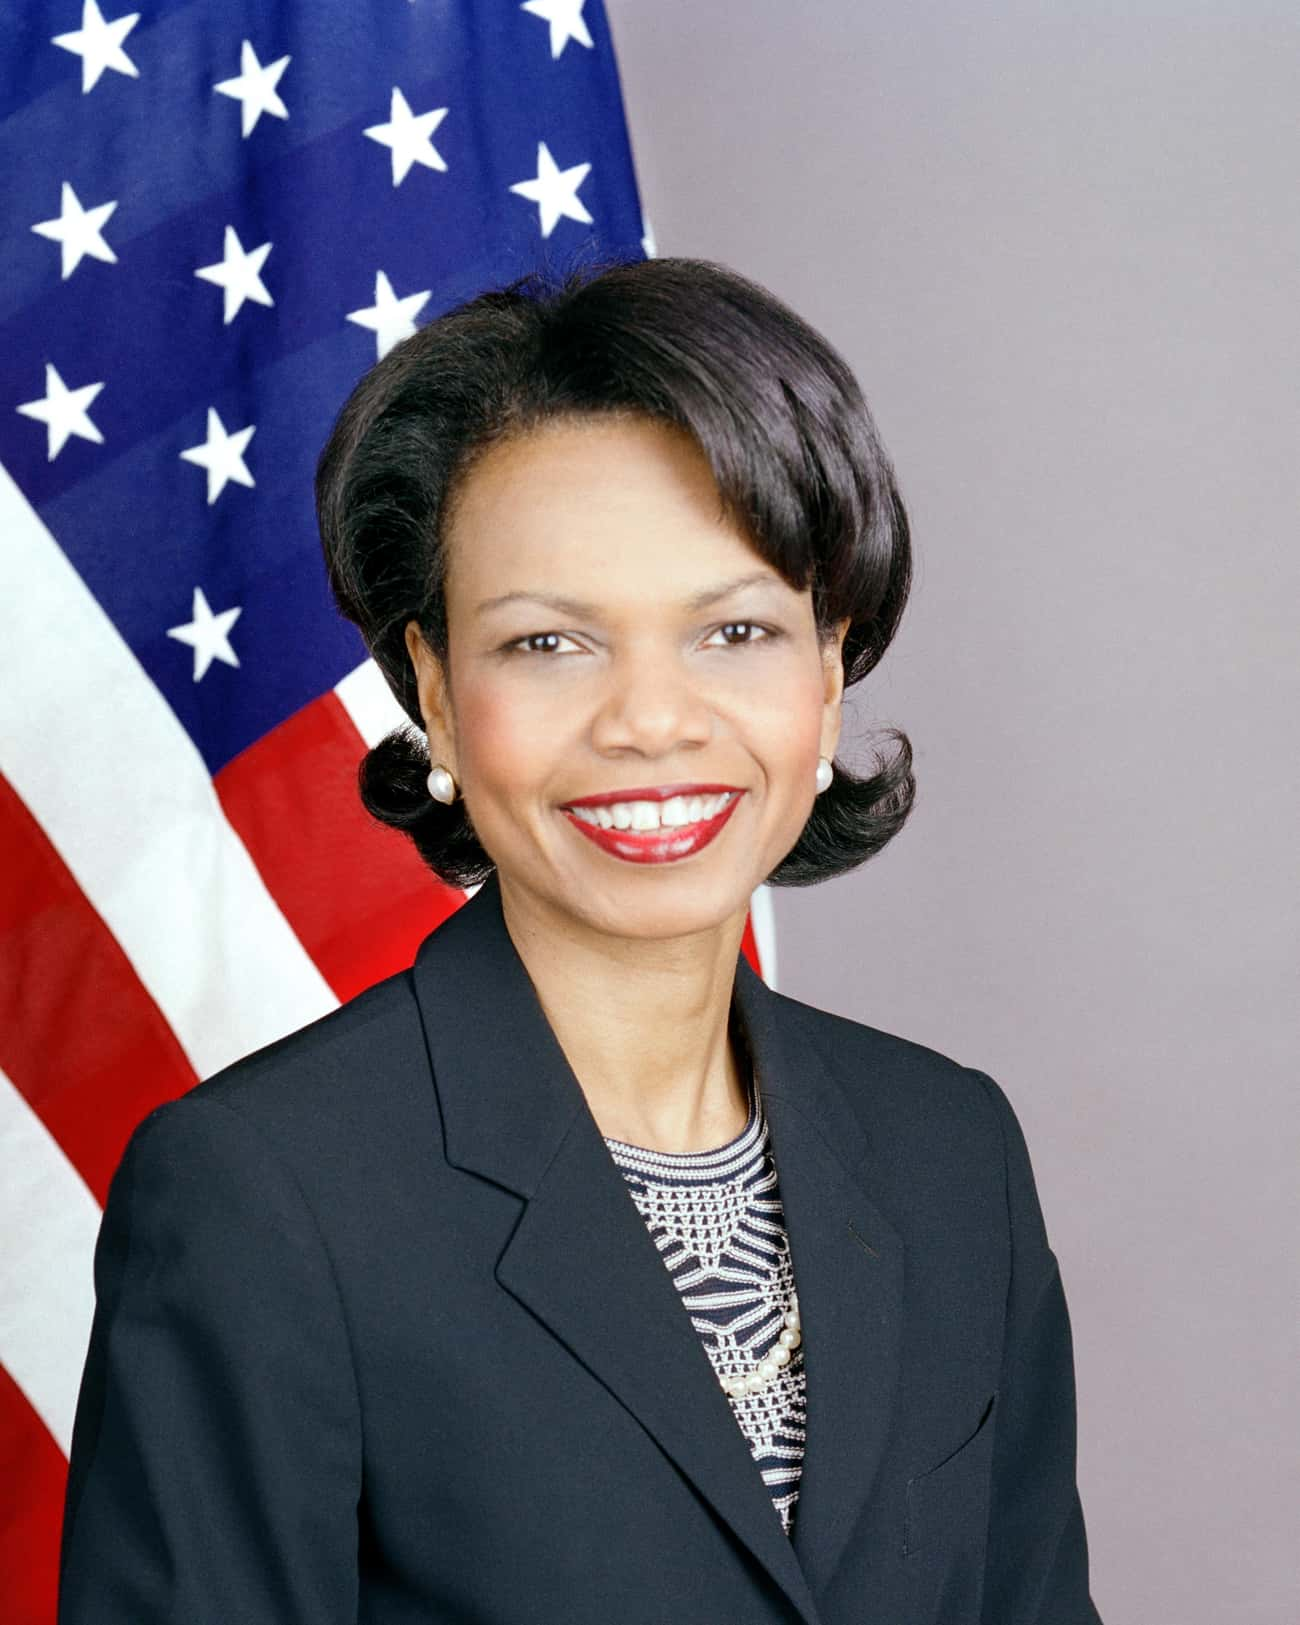 Condoleezza Rice is listed (or ranked) 1 on the list Famous Female Political Scientists